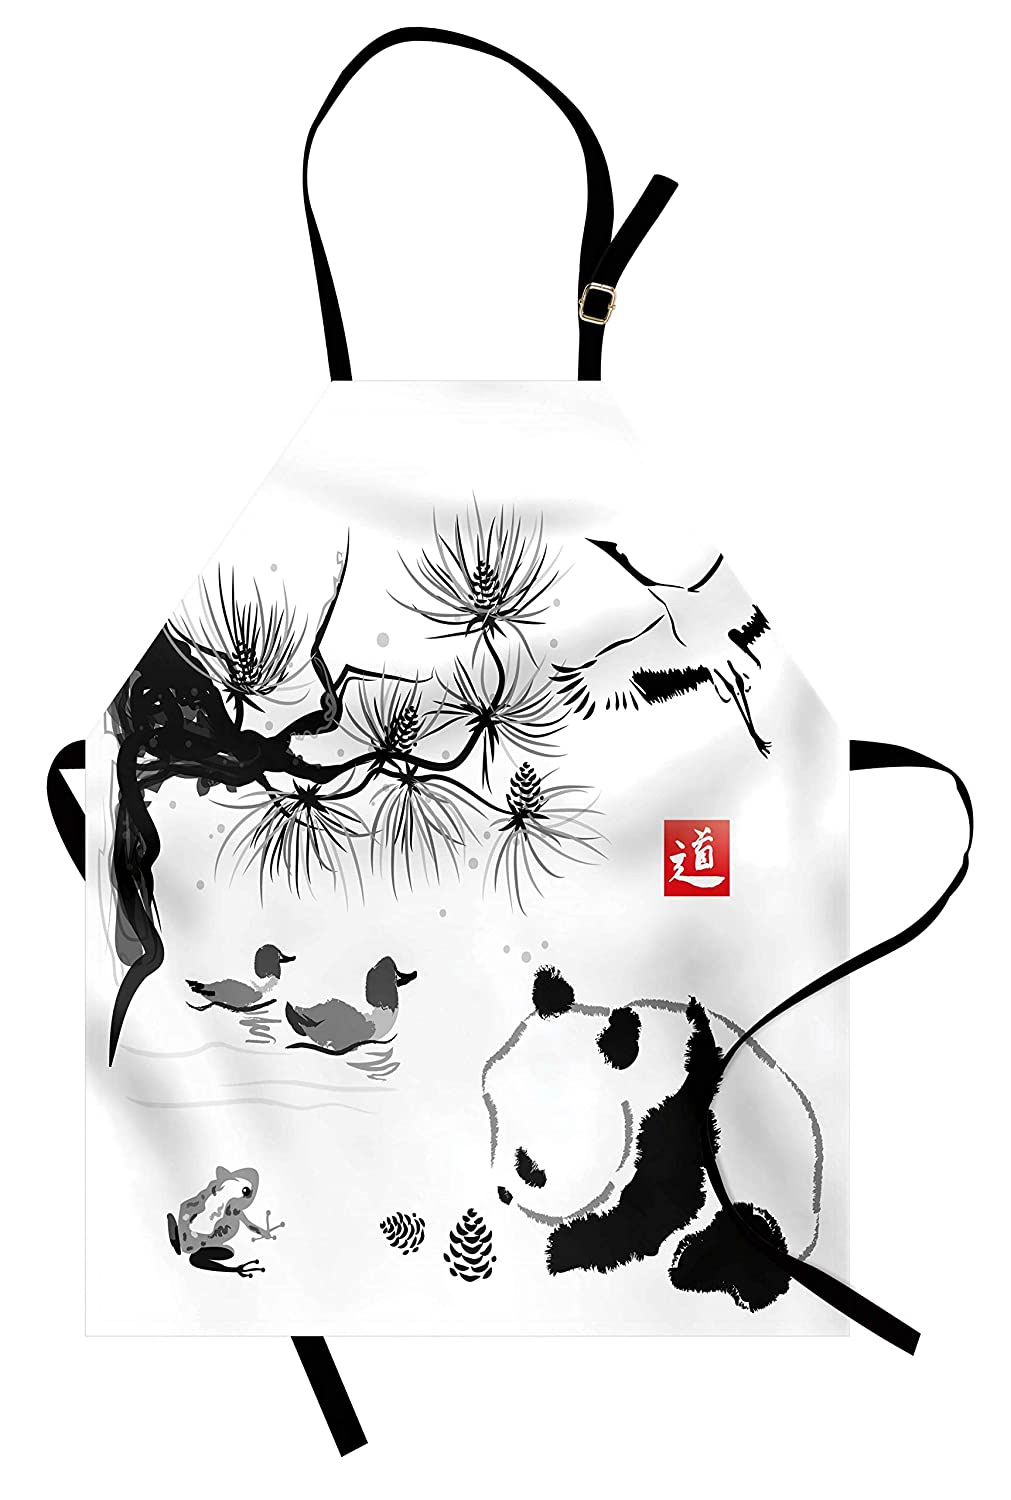 Panda bear traditional japanese painting style art hieroglyph way unisex kitchen bib apron adjustable neck cooking baking gardening black white red